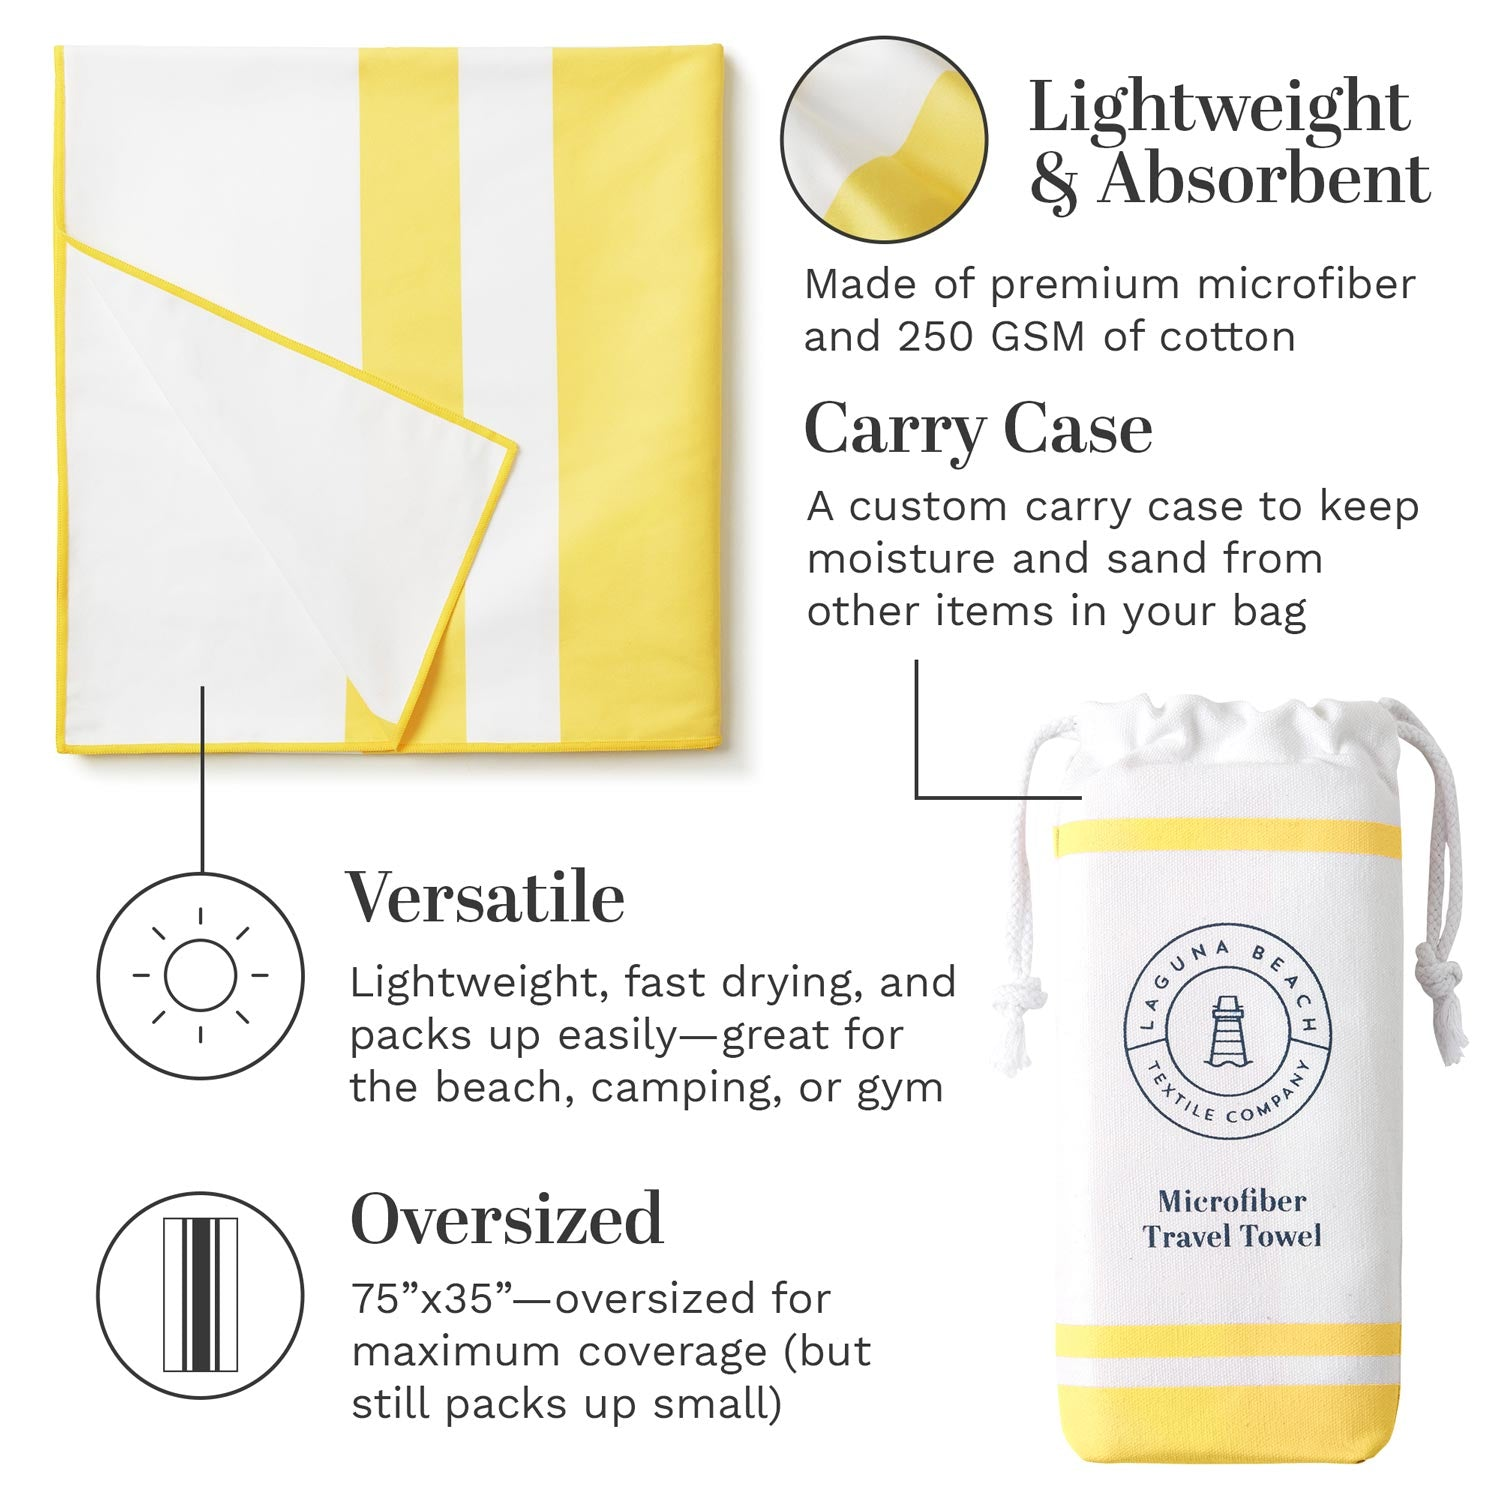 Infographic for yellow microfiber beach towel highlighting how it is oversized, lightweight, and absorbent.